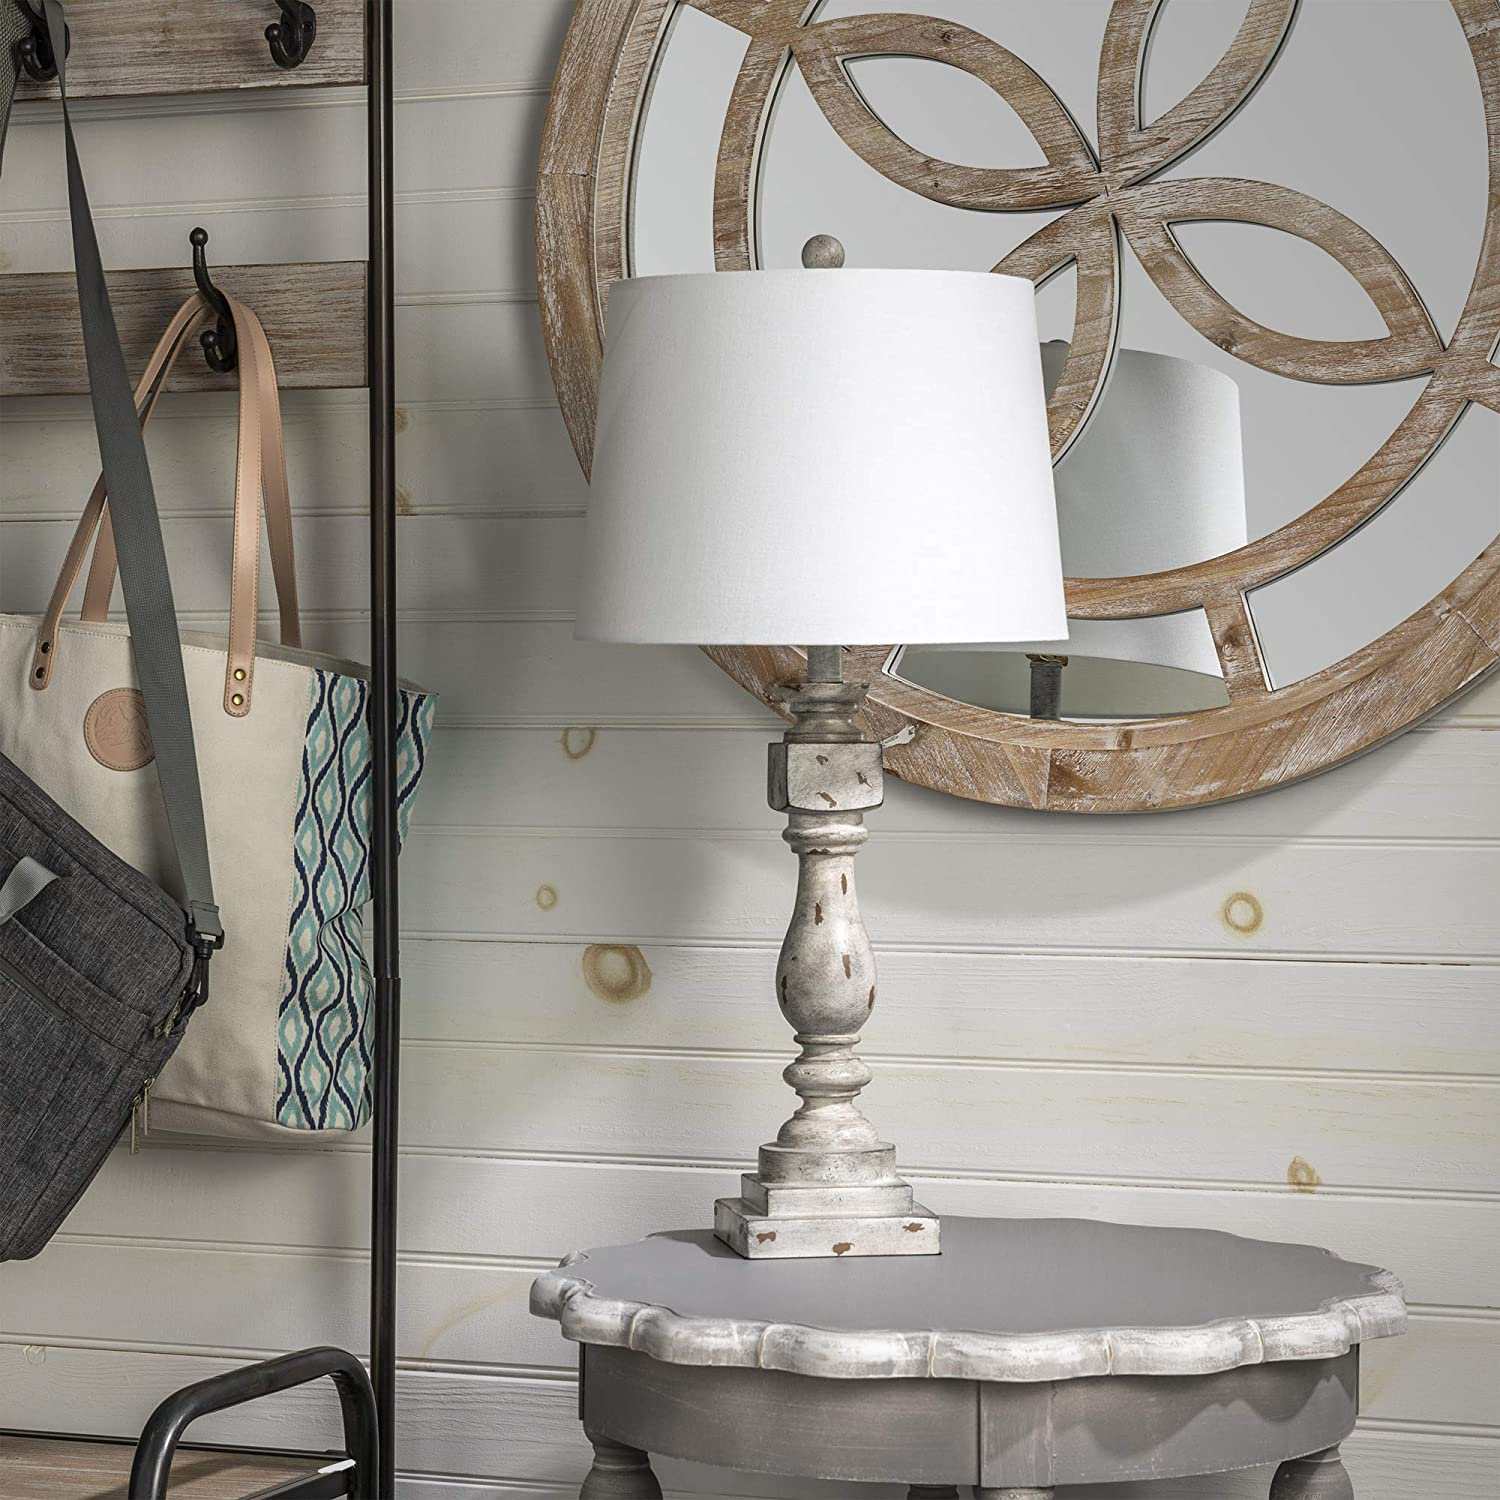 Crestview Collection Basie 29 Inch Distressed Gray Table Lamp for Living Room, Bedroom, and Home Office